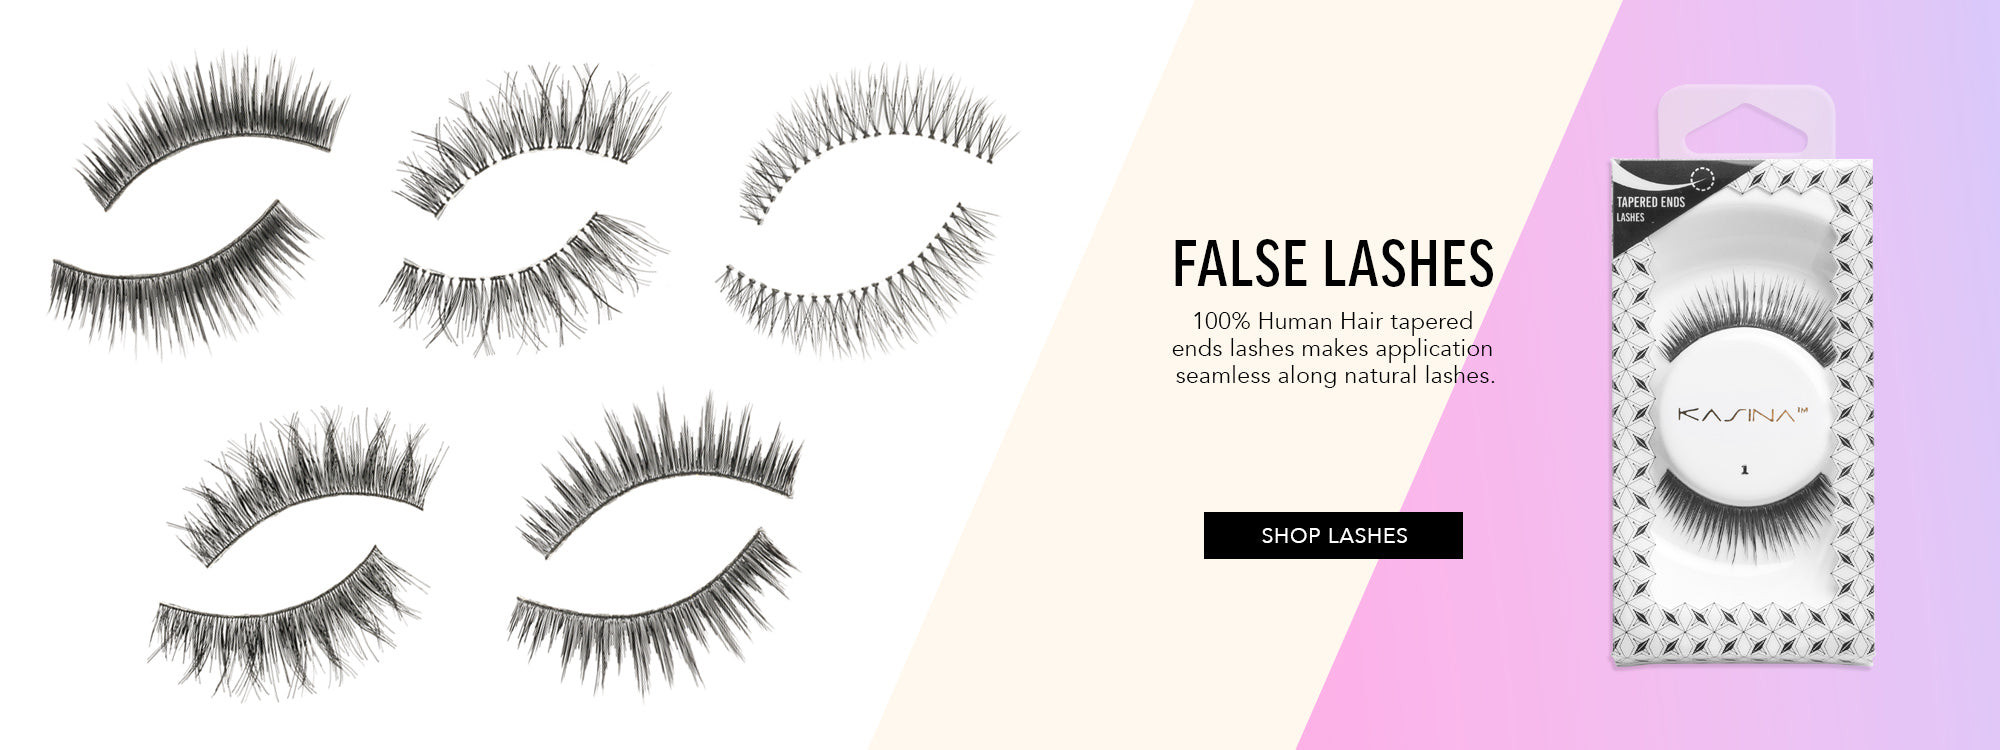 KASINA Professional Mer enn bare vipper, de er en  More Than Just Lashes, They're A